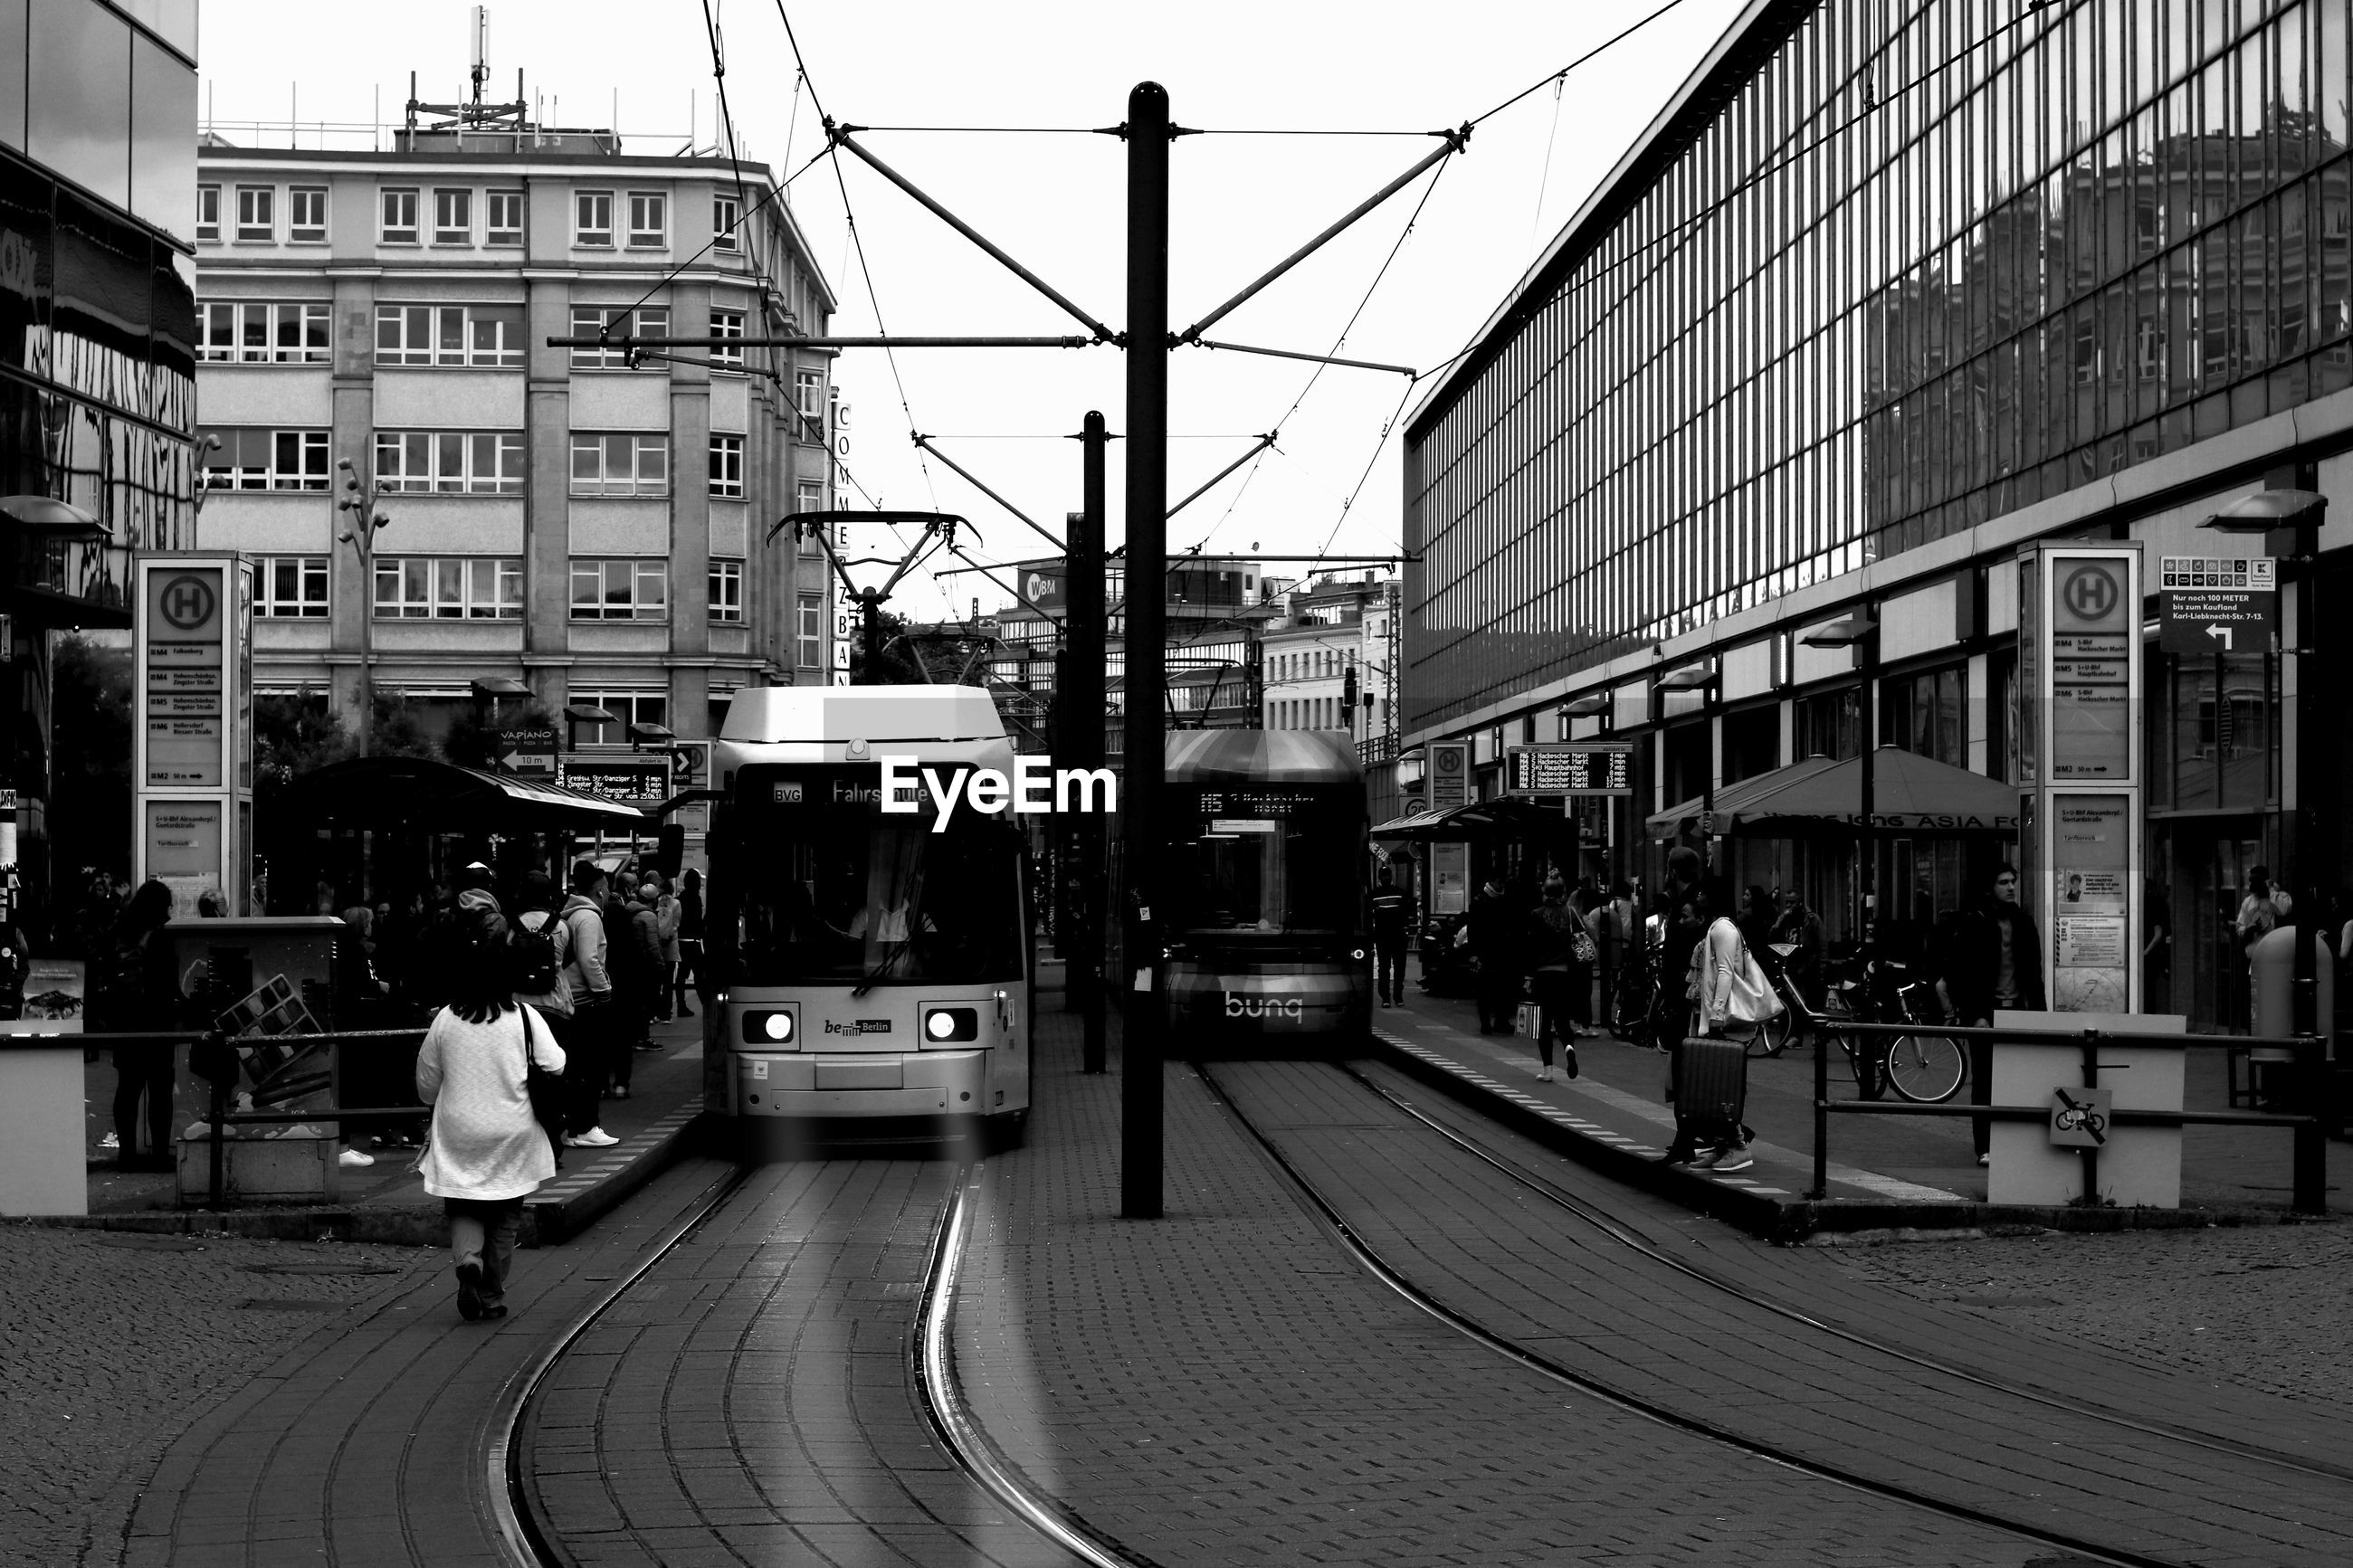 Trams on street amidst buildings in city